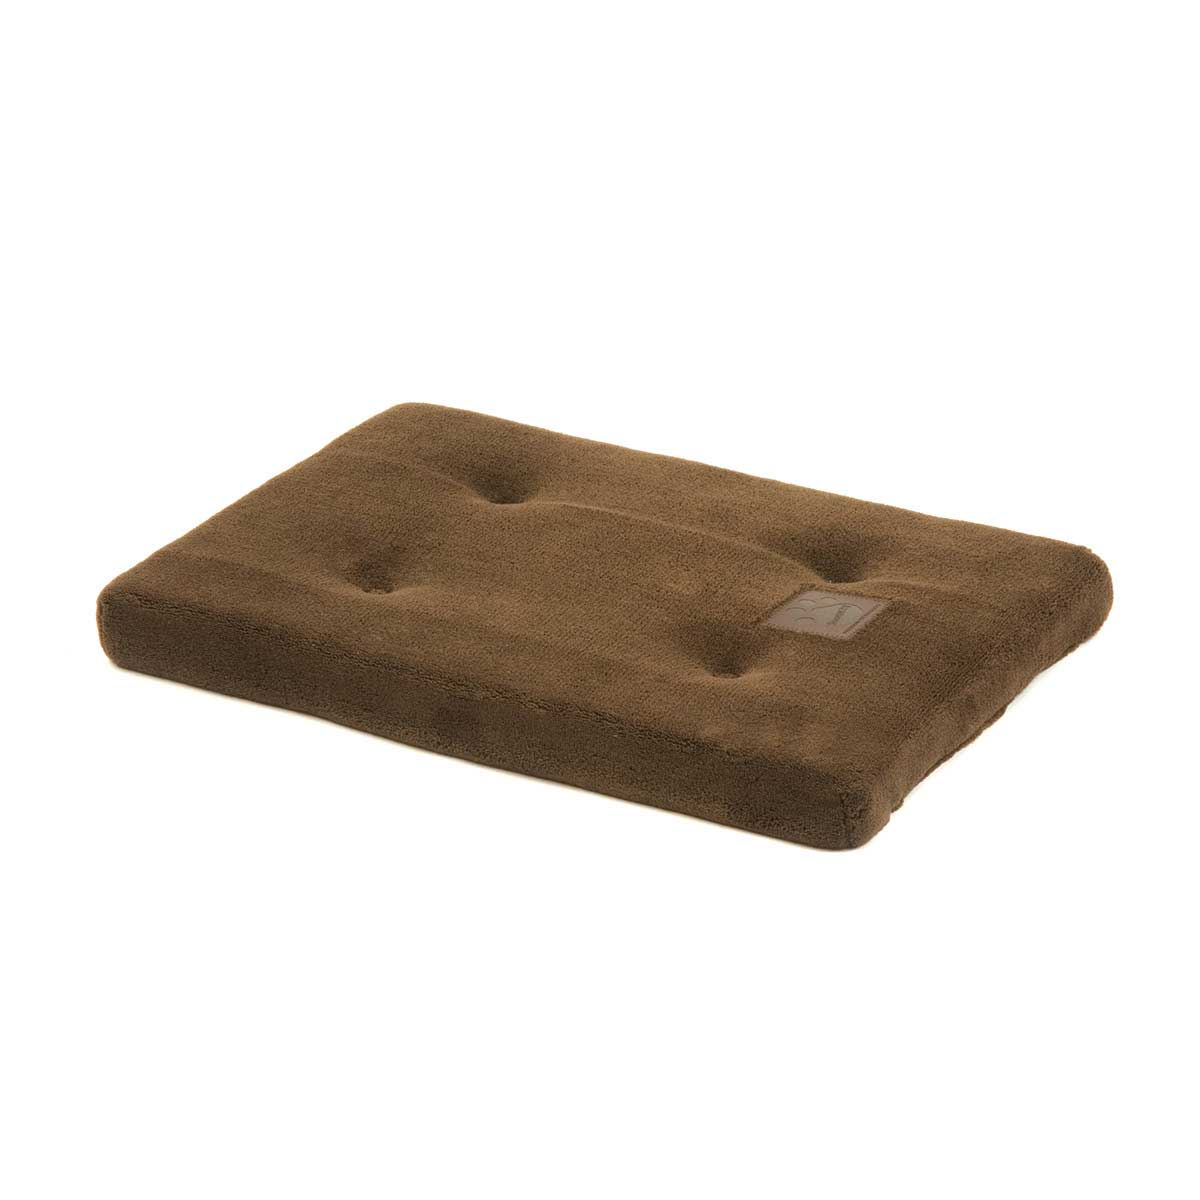 Snoozzy Brown Pet Mattress 47 inches by 28 inches